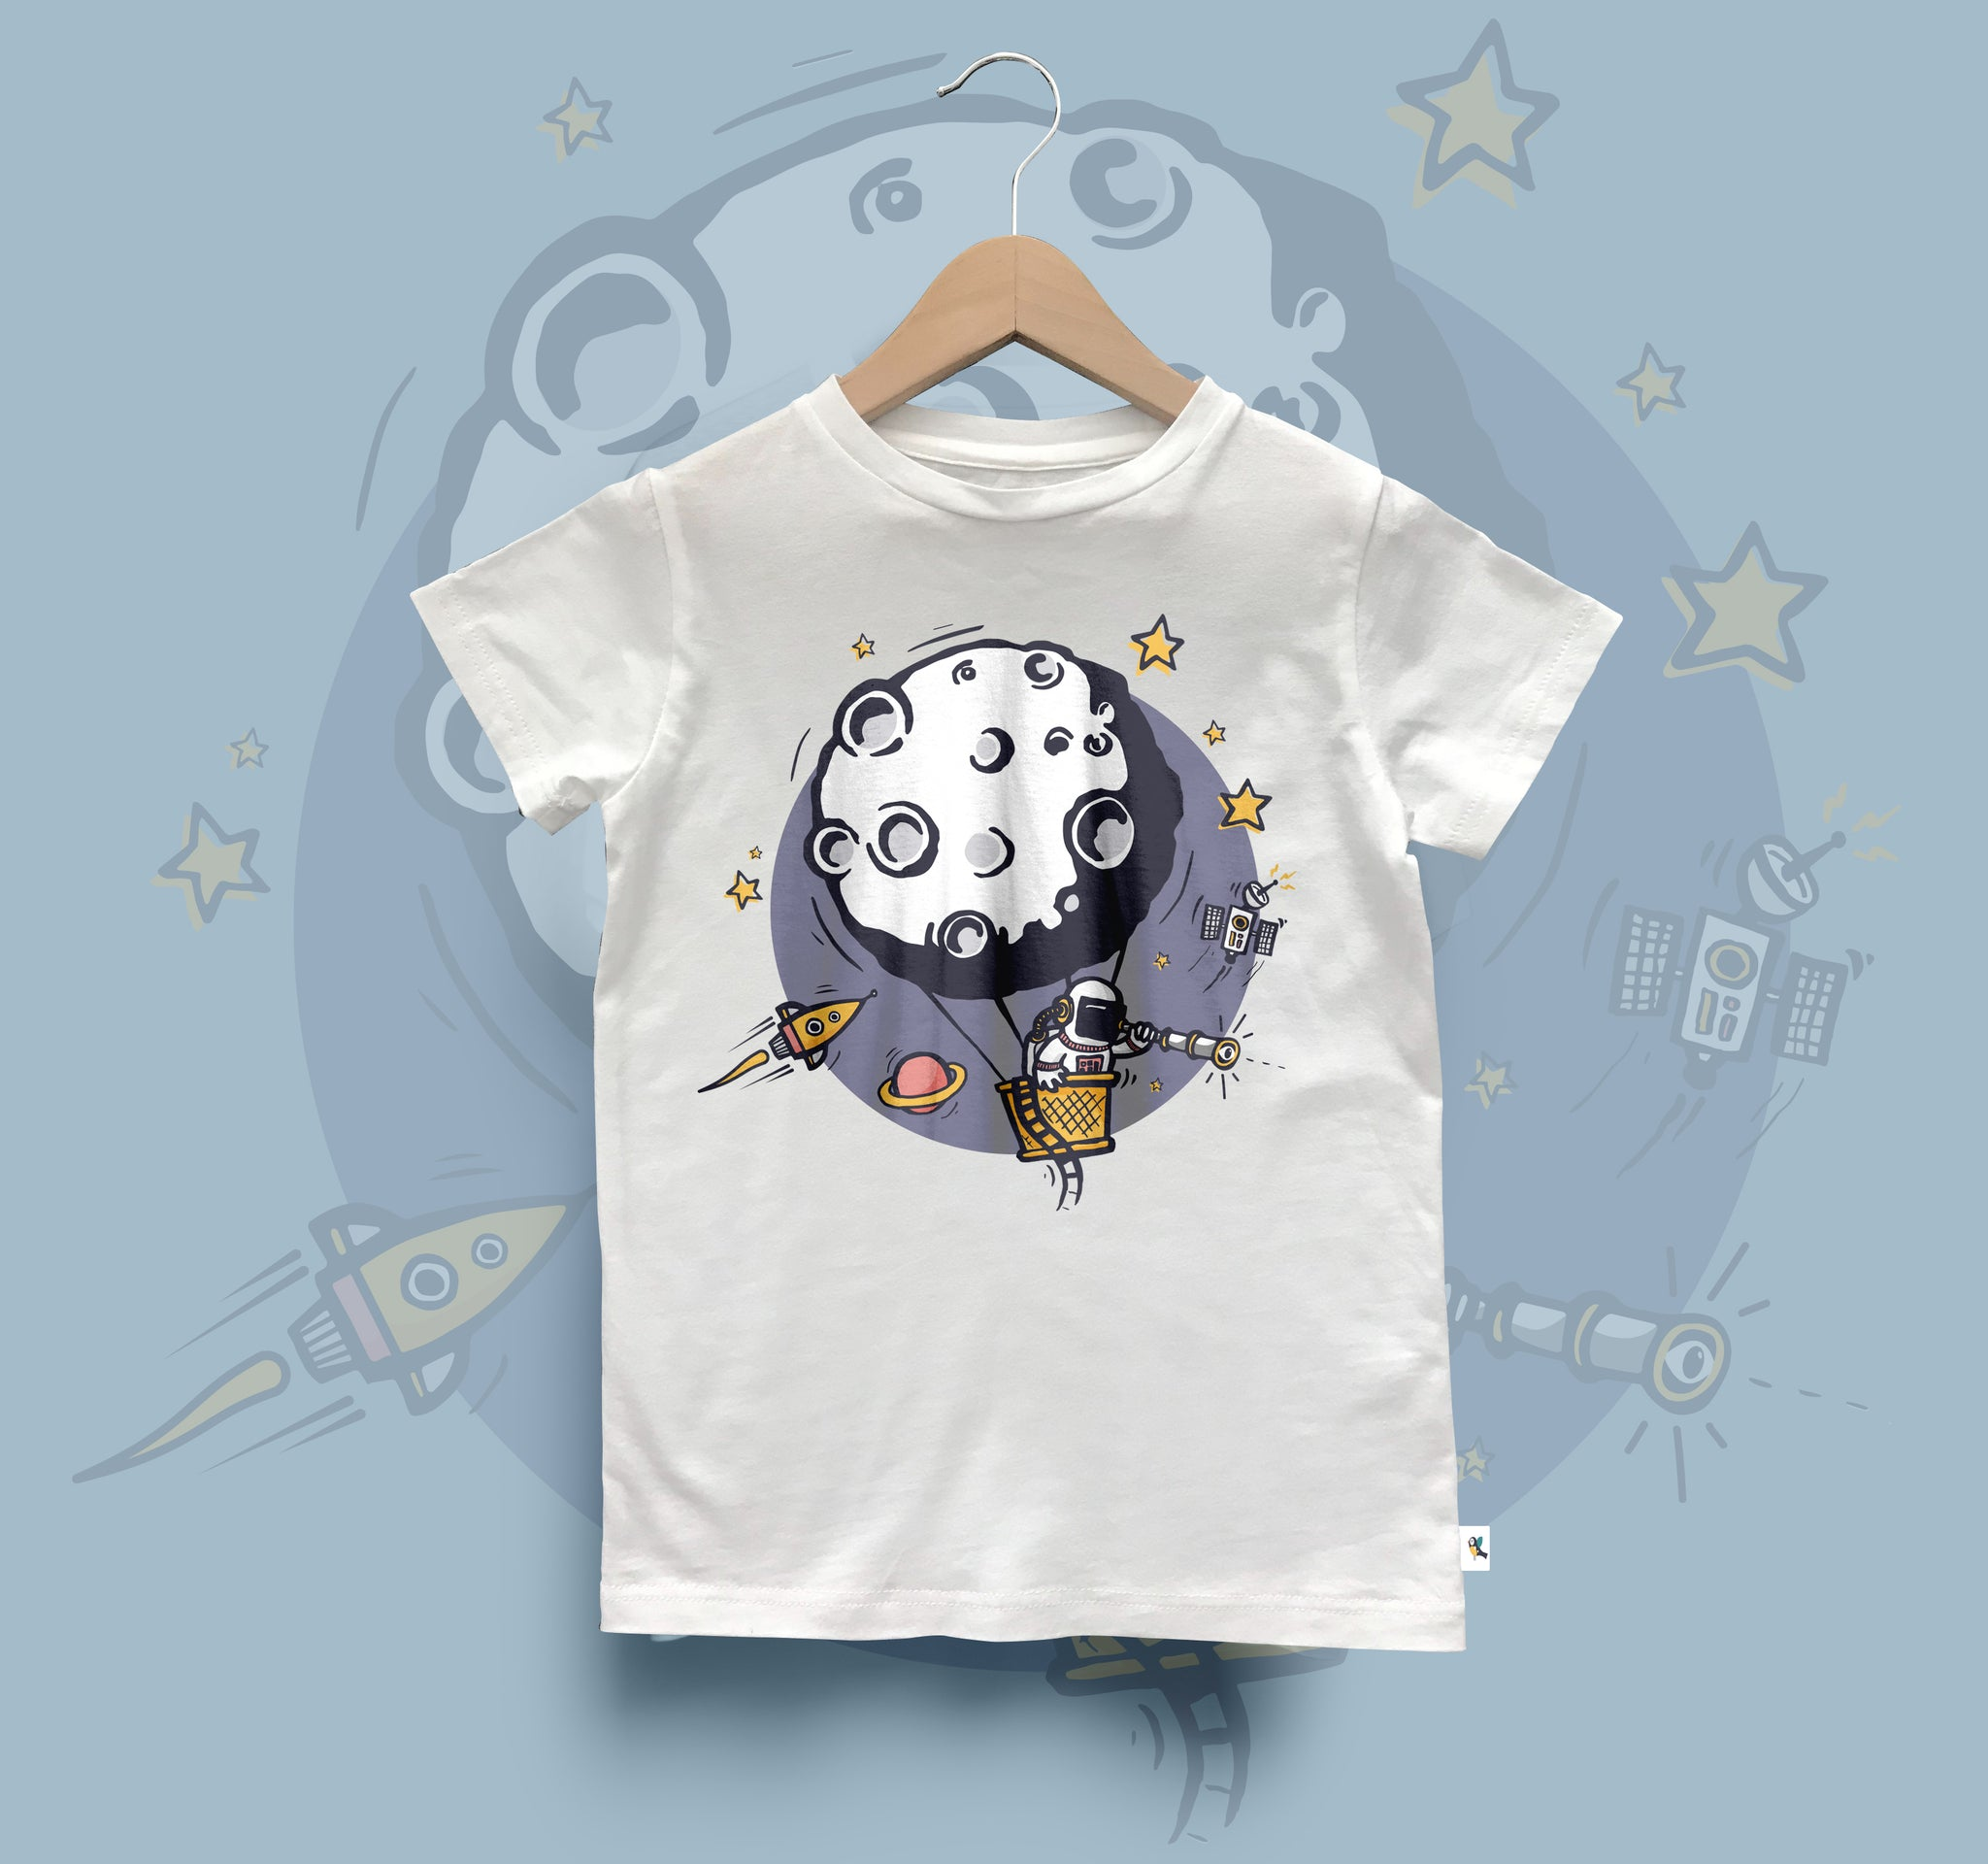 Kids Organic Cotton Tee // Outer Space Theme